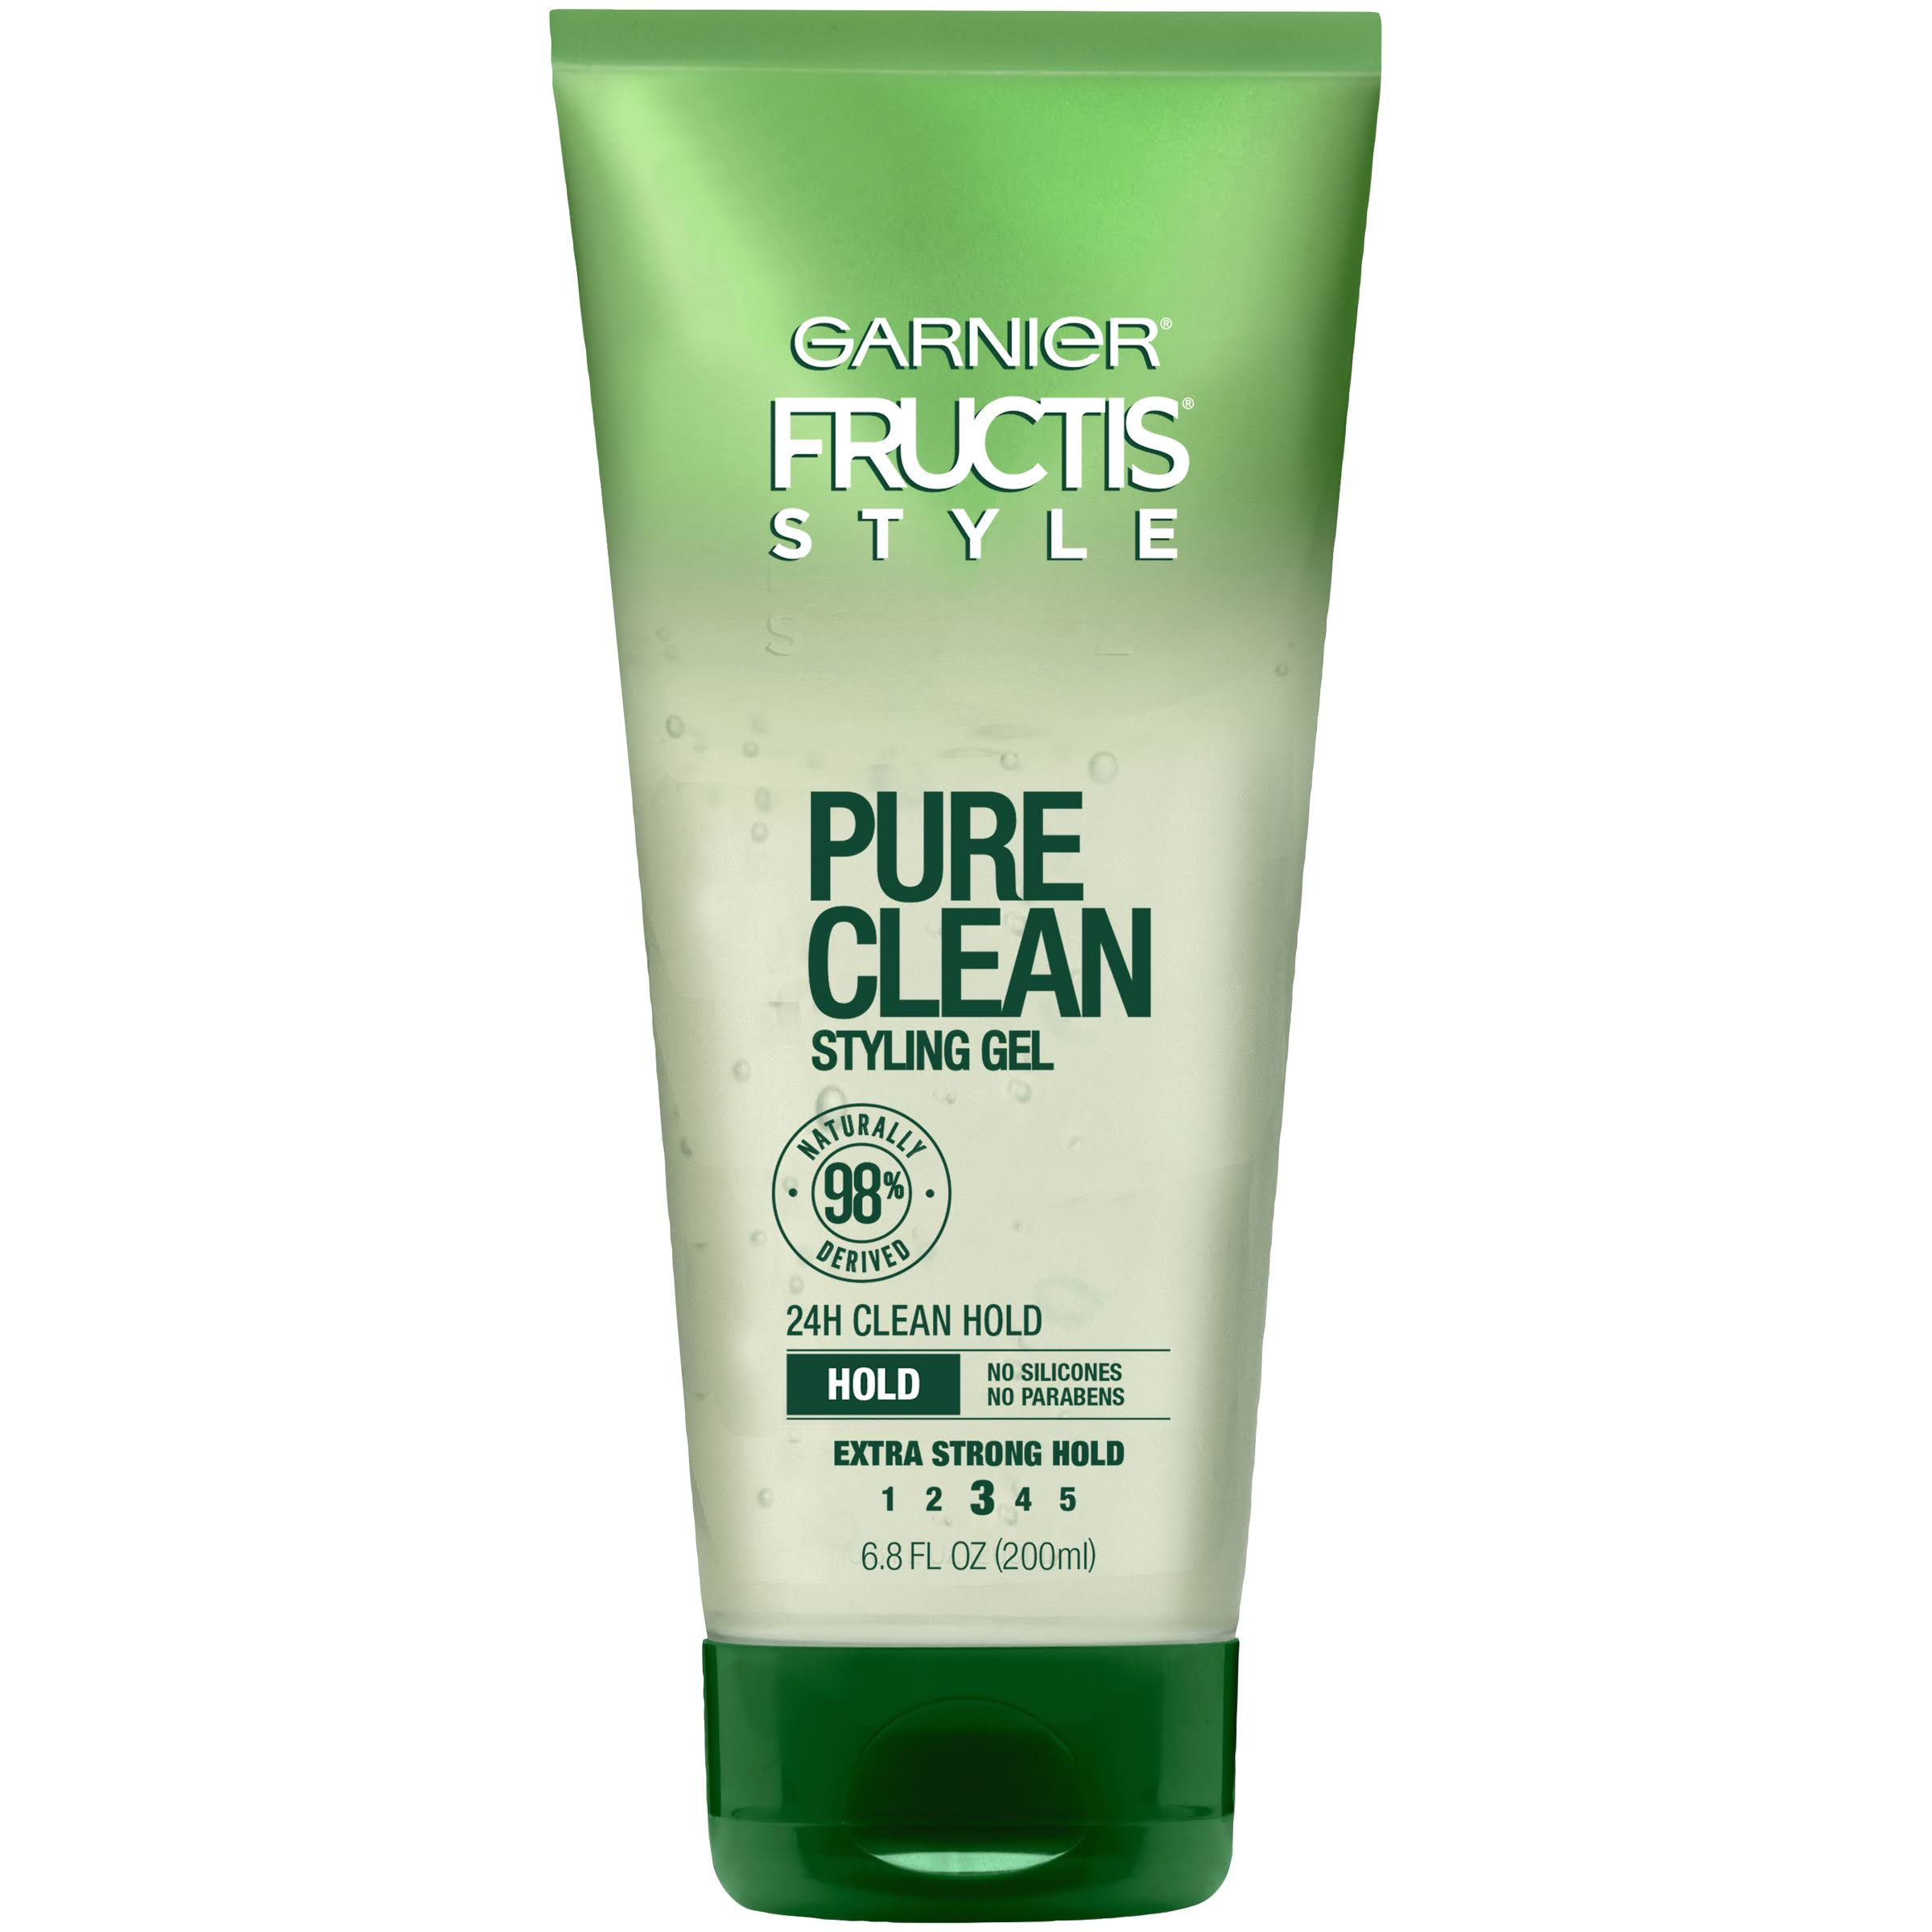 Garnier Fructis Pure Clean Styling Gel - 200ml